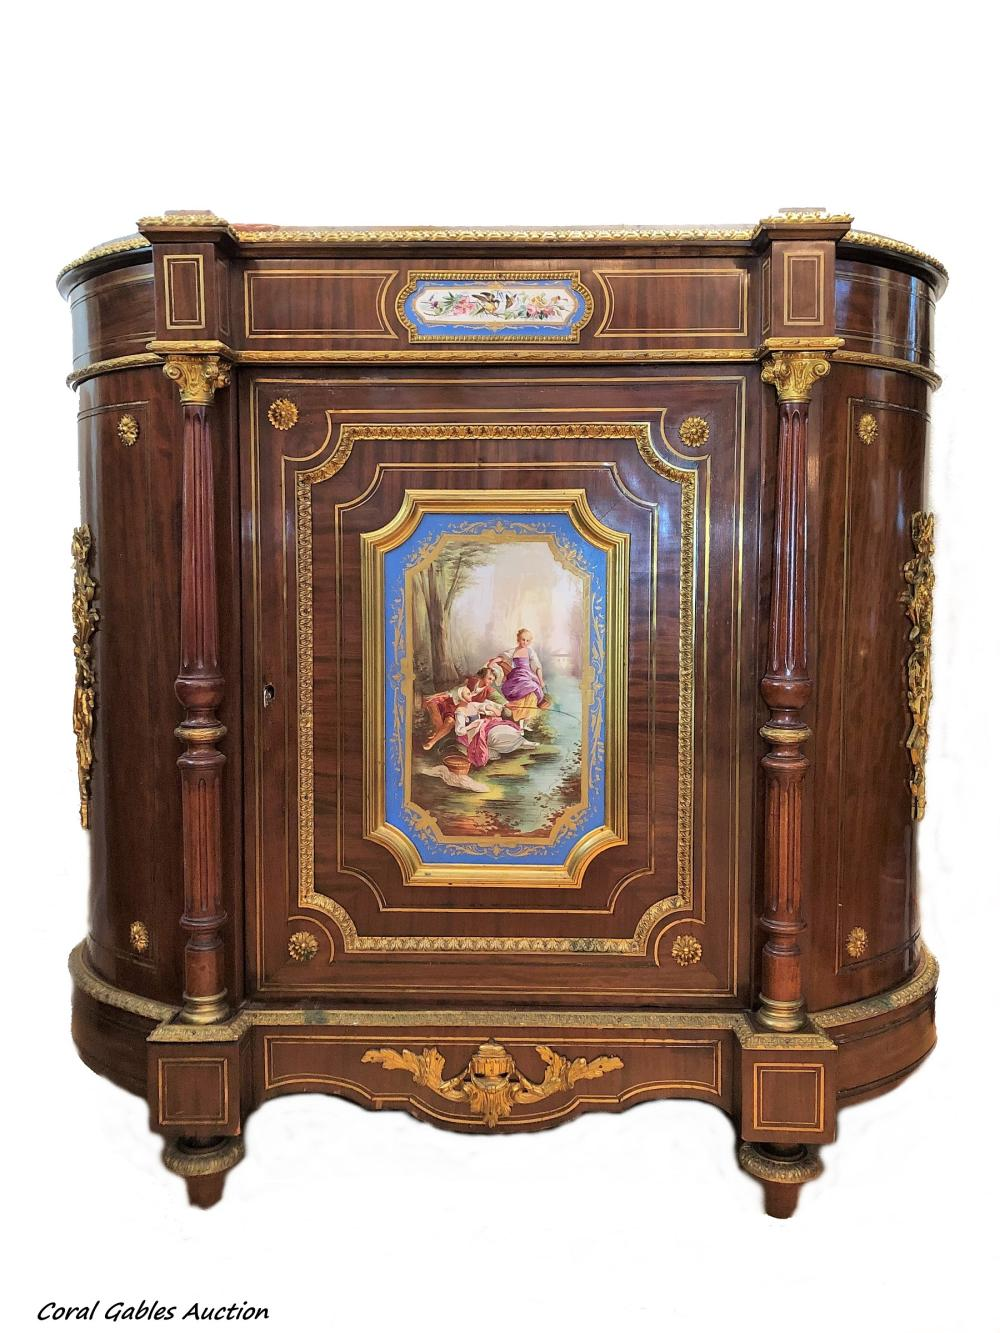 19th century French Commode with bronze and sevre plaques